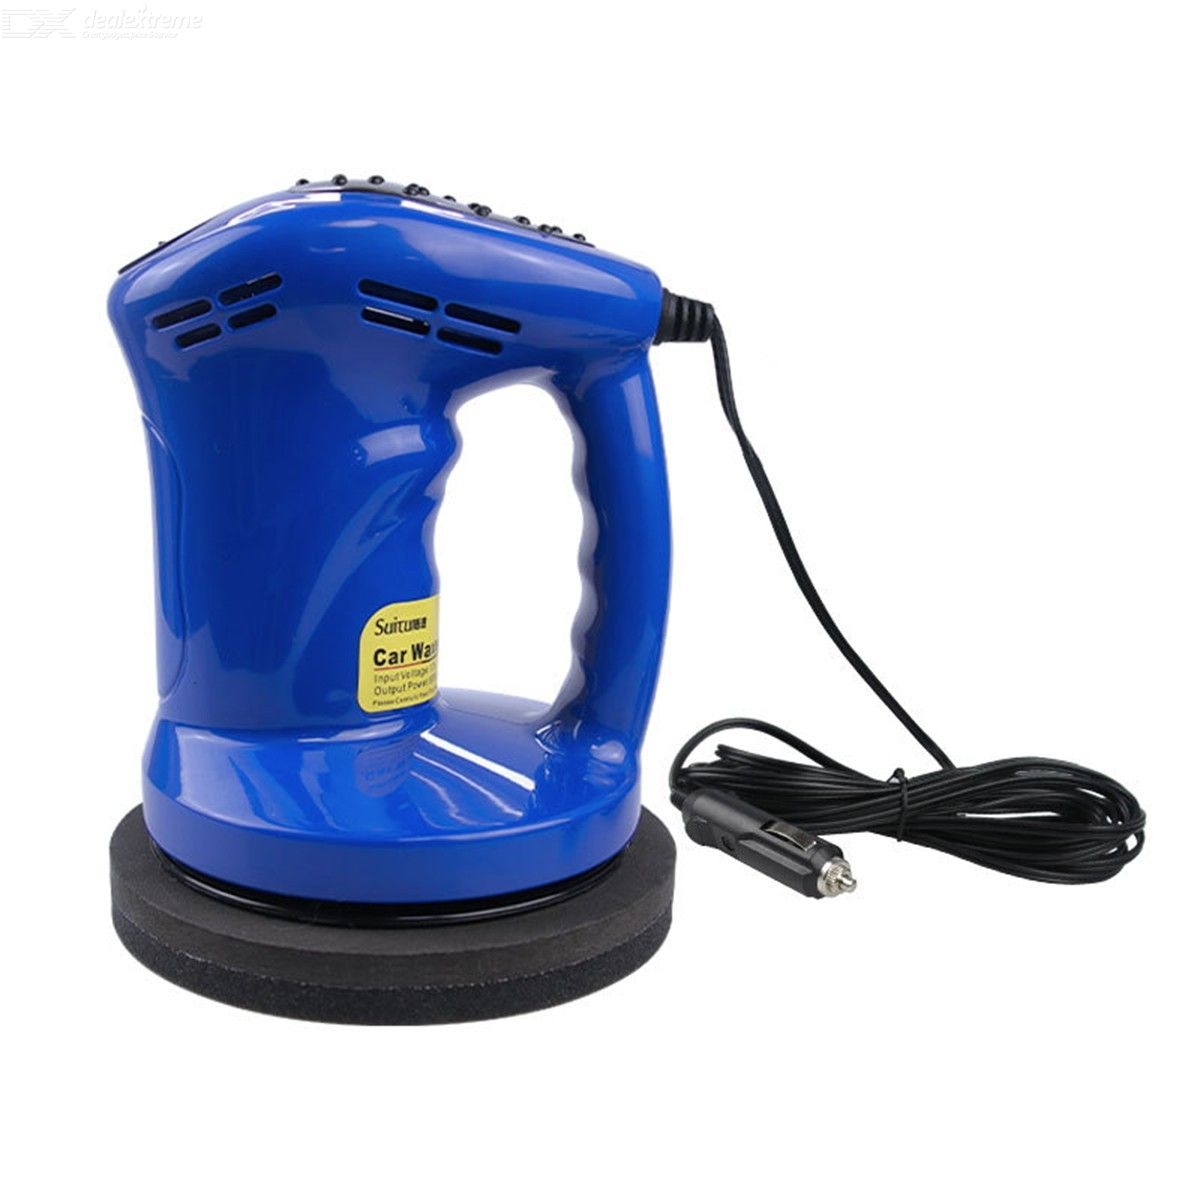 DC 12V Car Waxer Polisher Portable Handheld Waxing Kit With 1500RPM